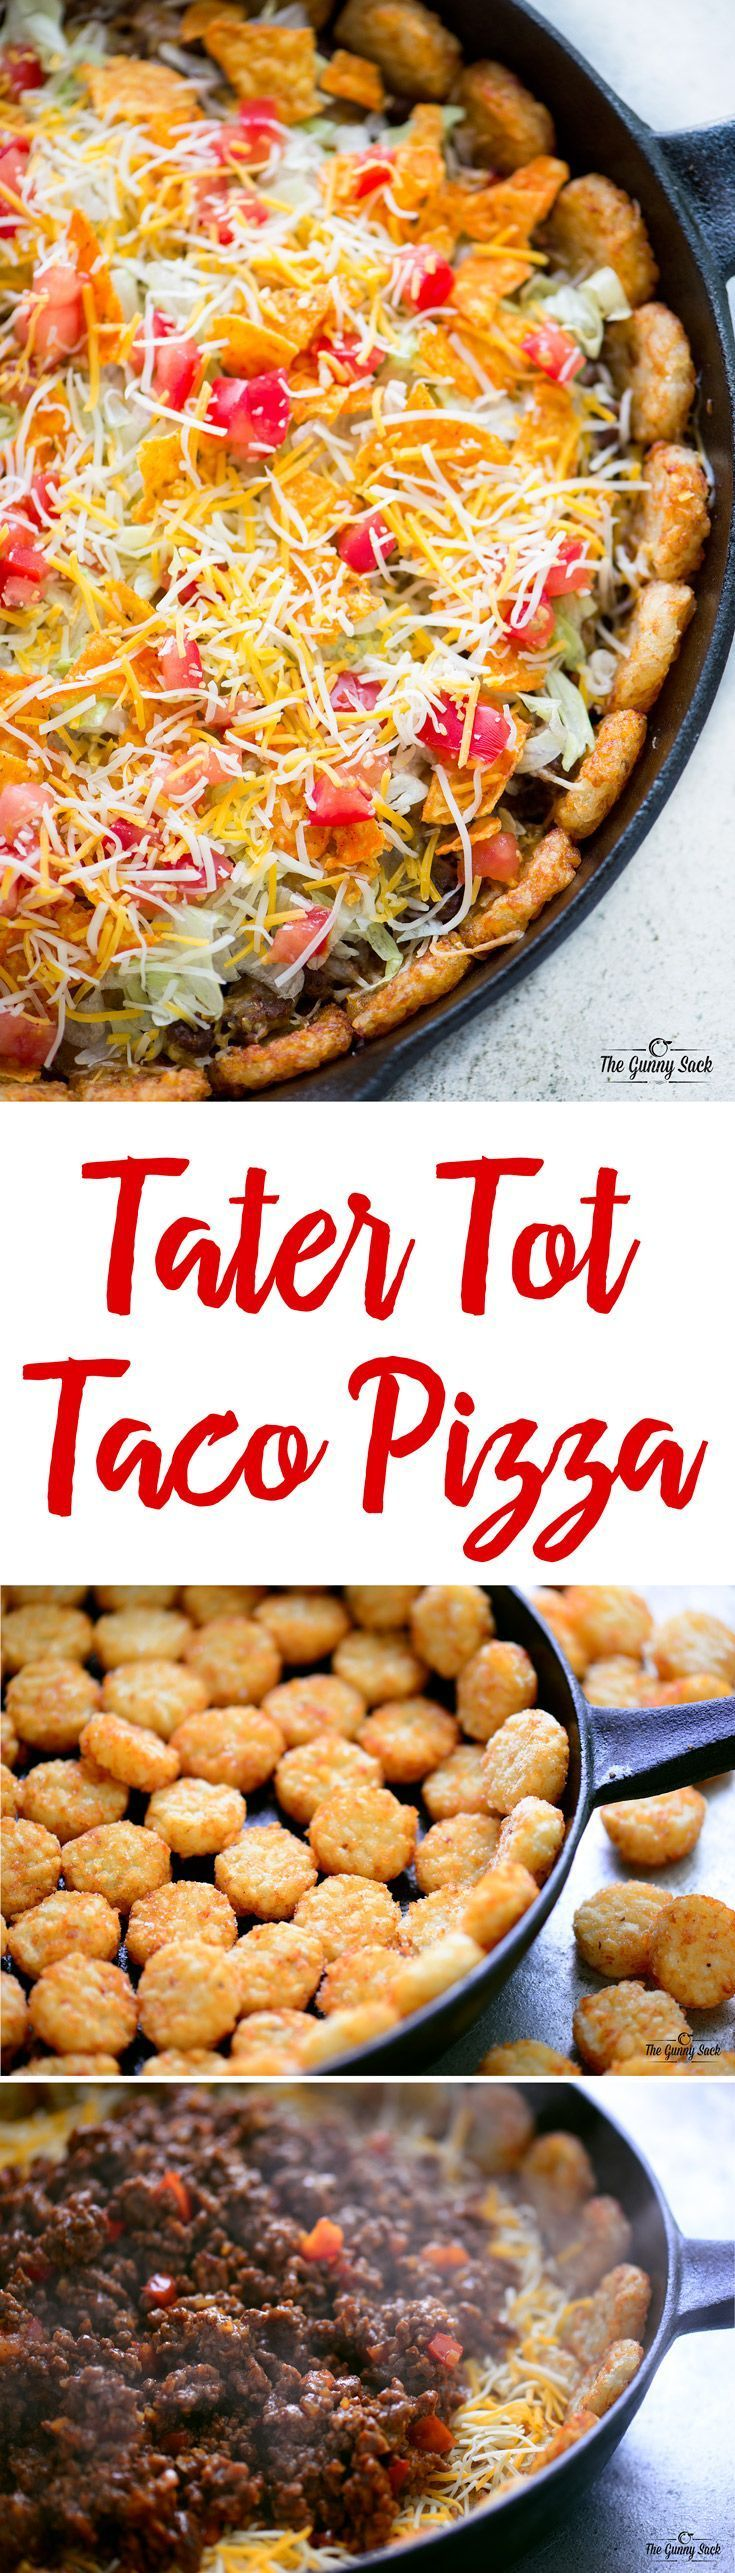 Tater Tot Taco Pizza is a mouthwatering combo of two of your favorite eats: tacos and pizza! The tater tot crust makes this dinner recipe even more fun. This would be a great recipe to serve at a party, potluck or on game day! You can customize it with your favorite taco toppings.